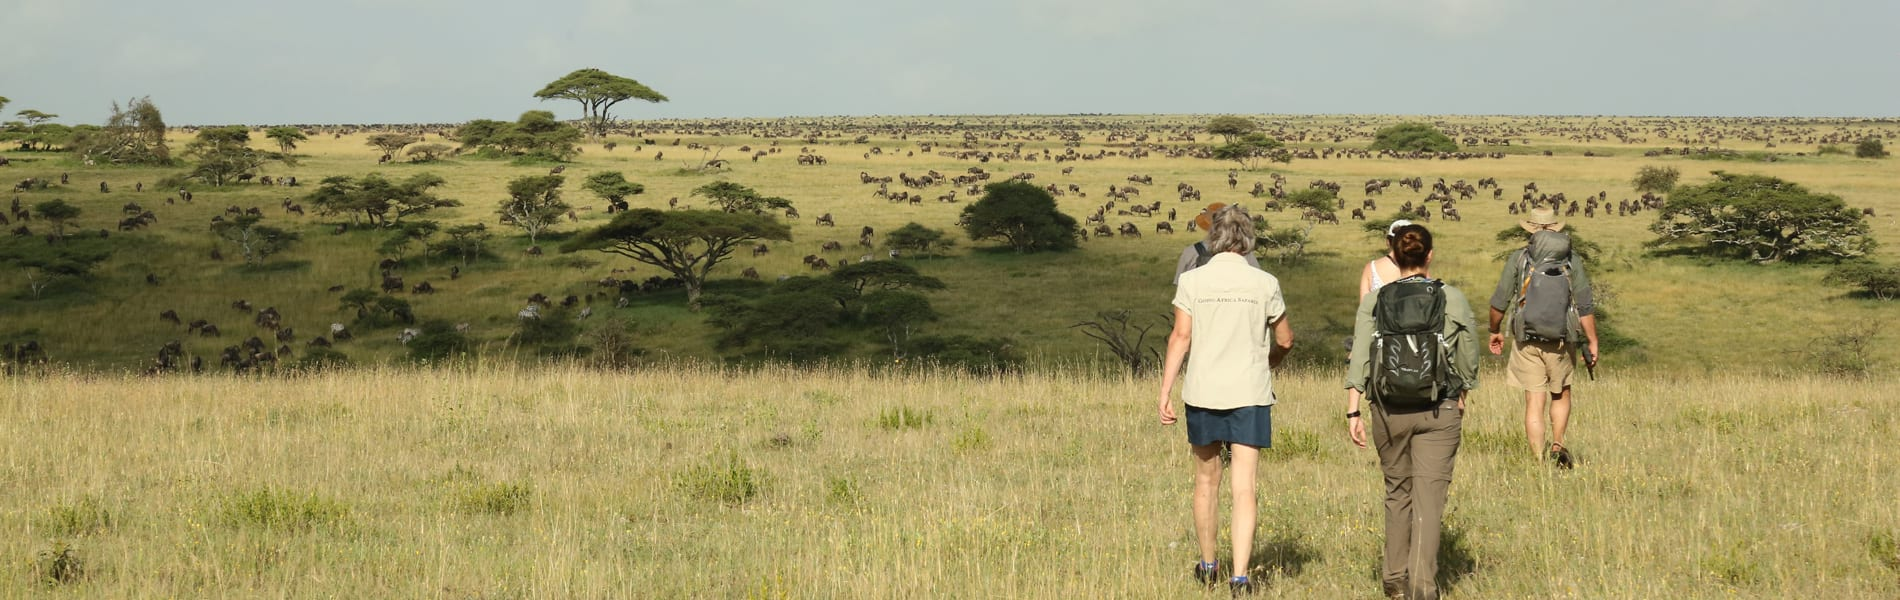 Walking Serengeti 1